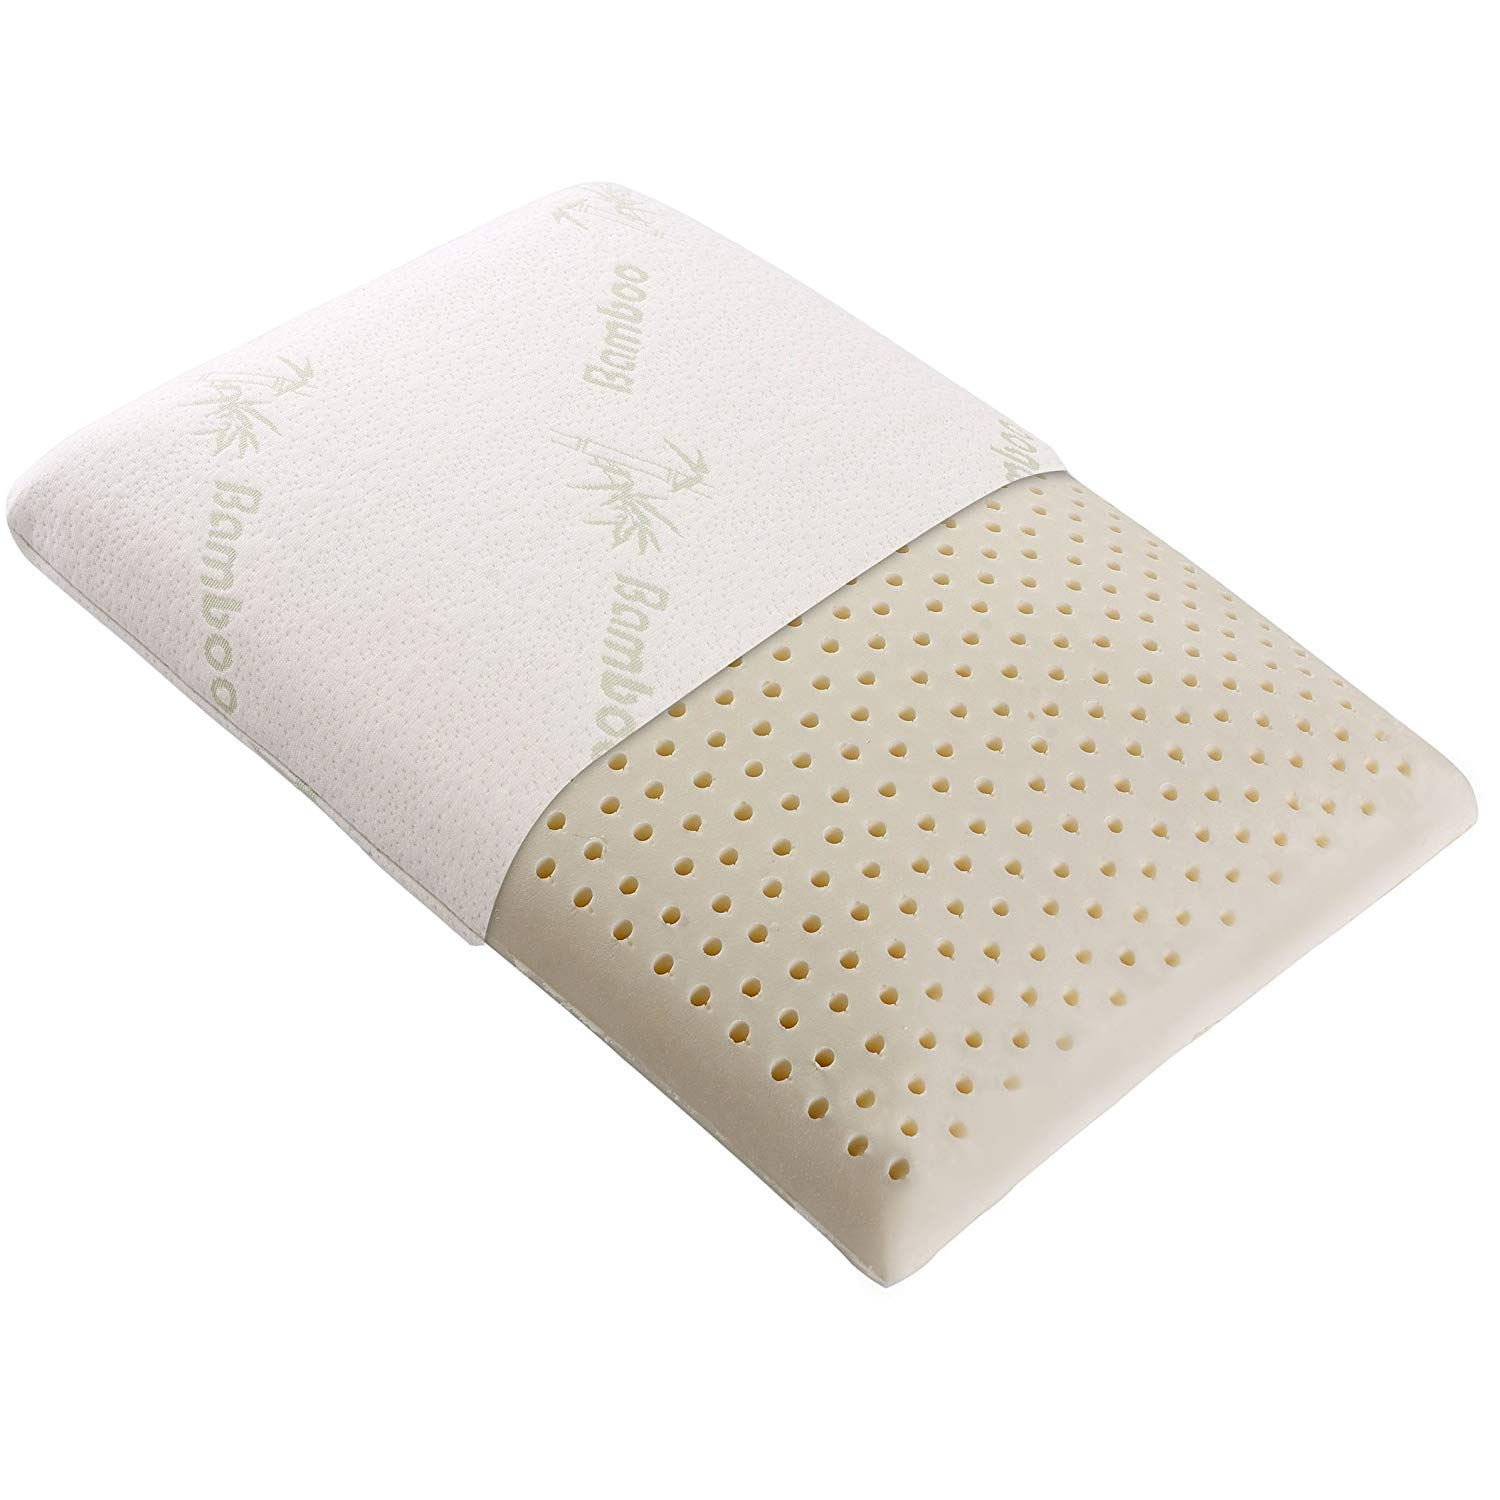 Latex Pillow Latex Pillow Top Brands And Buying Guide For 2019 Snoremagazine